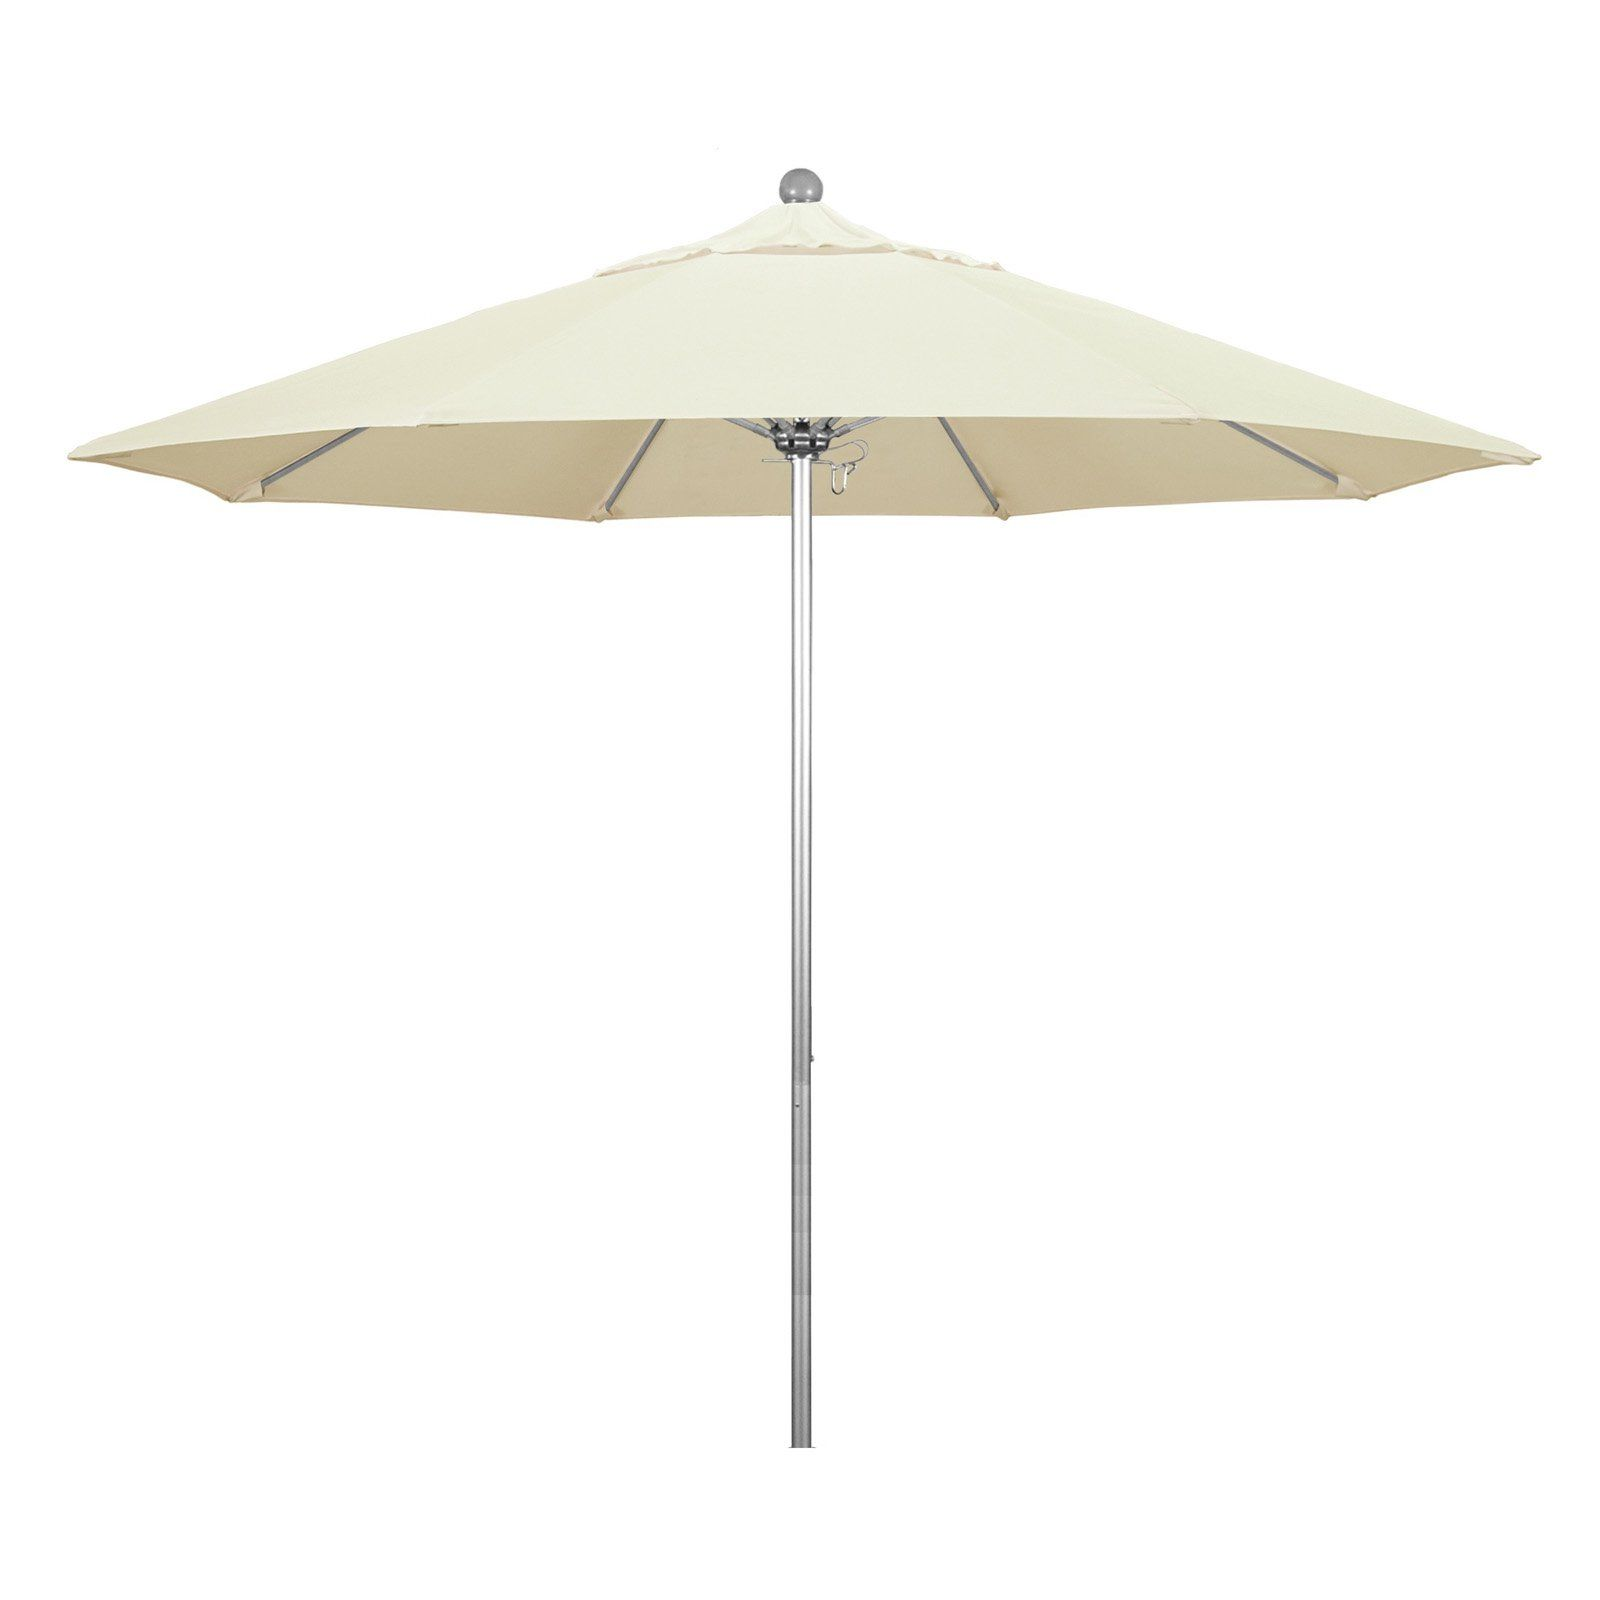 Phat Tommy 9 Ft Aluminum Commercial Grade Pacifica Patio Umbrella Spa